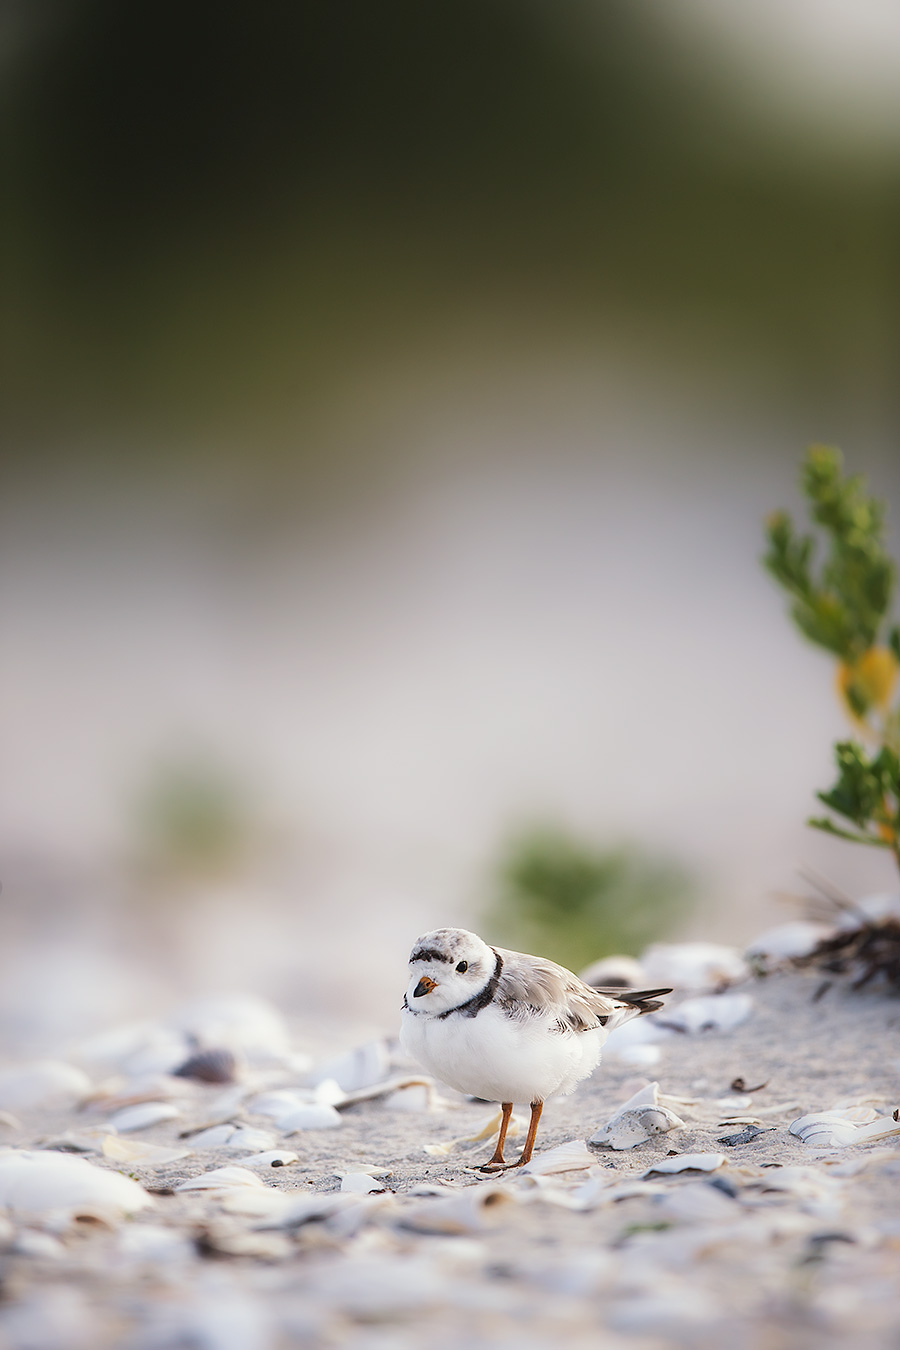 The Last Known Photo of Everyone's Favorite Plover:  Tufters!